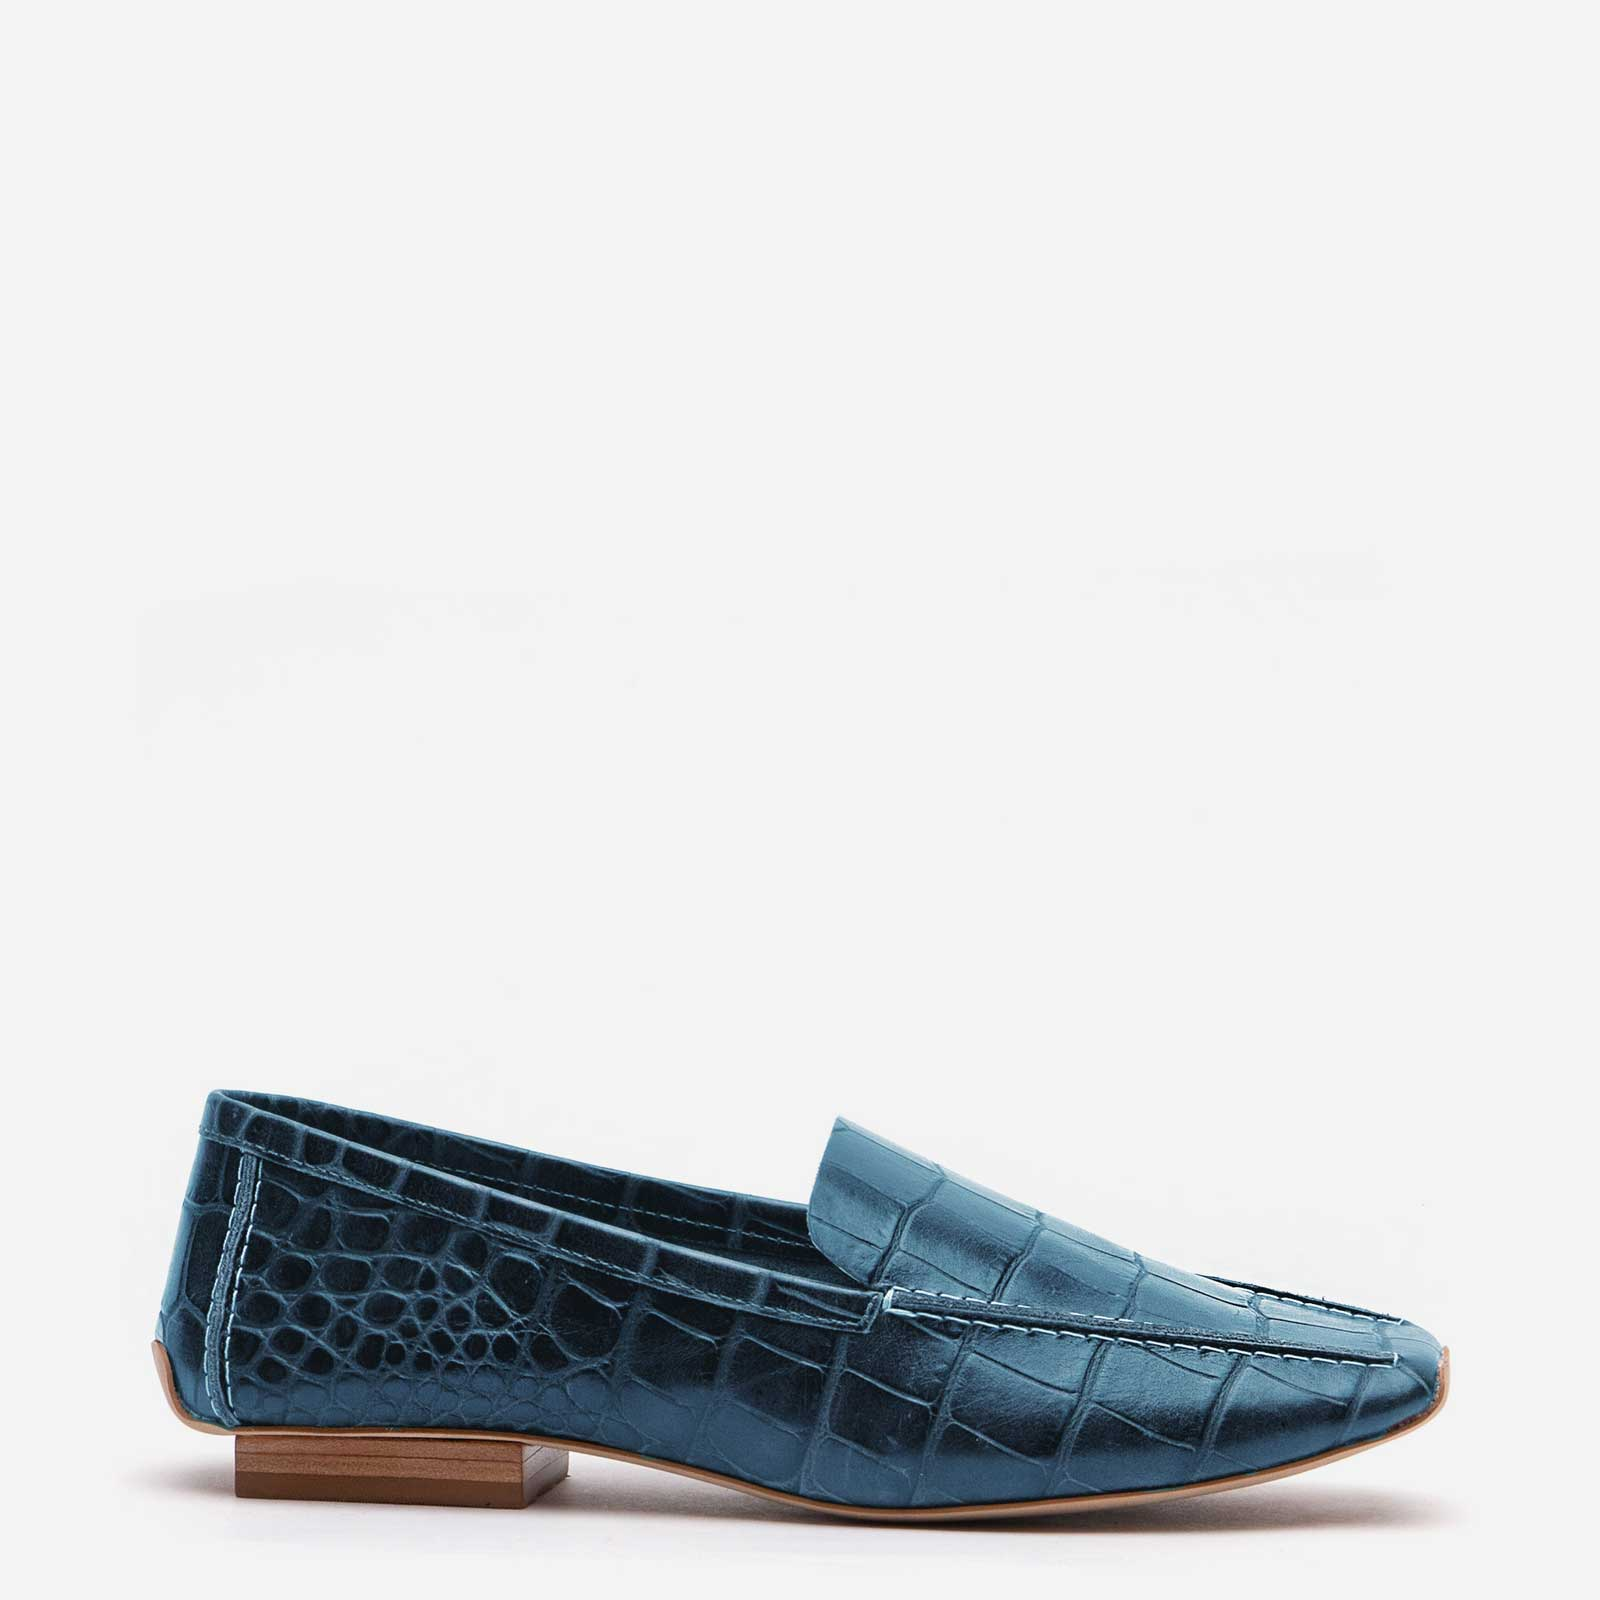 Elyce Loafer Croc Embossed Blue